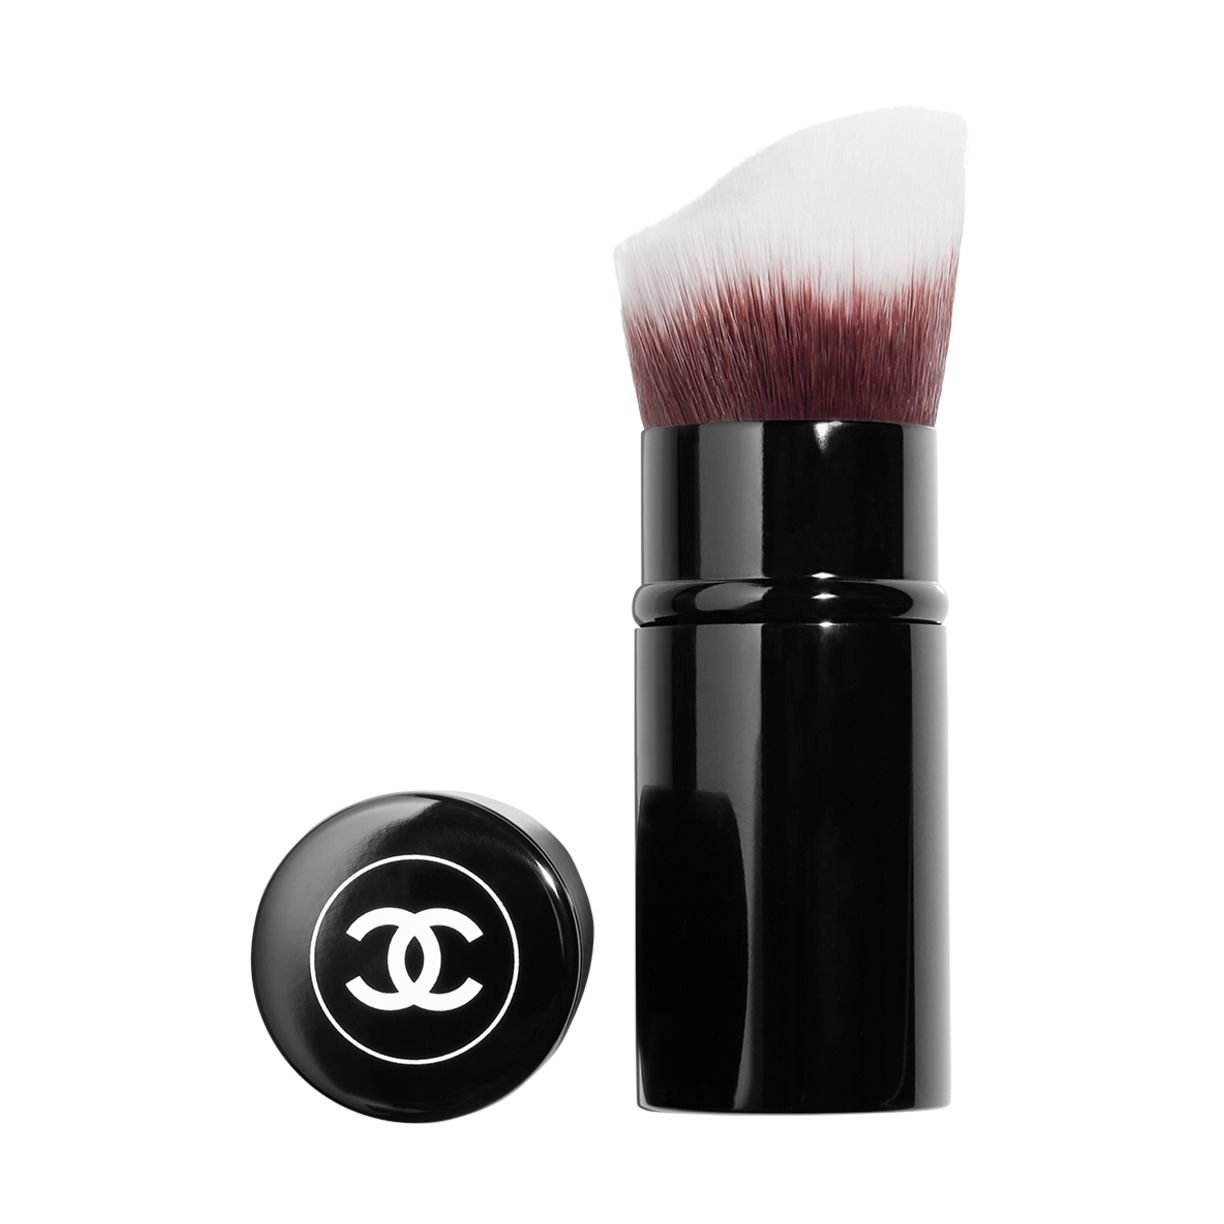 makeup brushes and accessories chanel complexion brushes lip. Black Bedroom Furniture Sets. Home Design Ideas